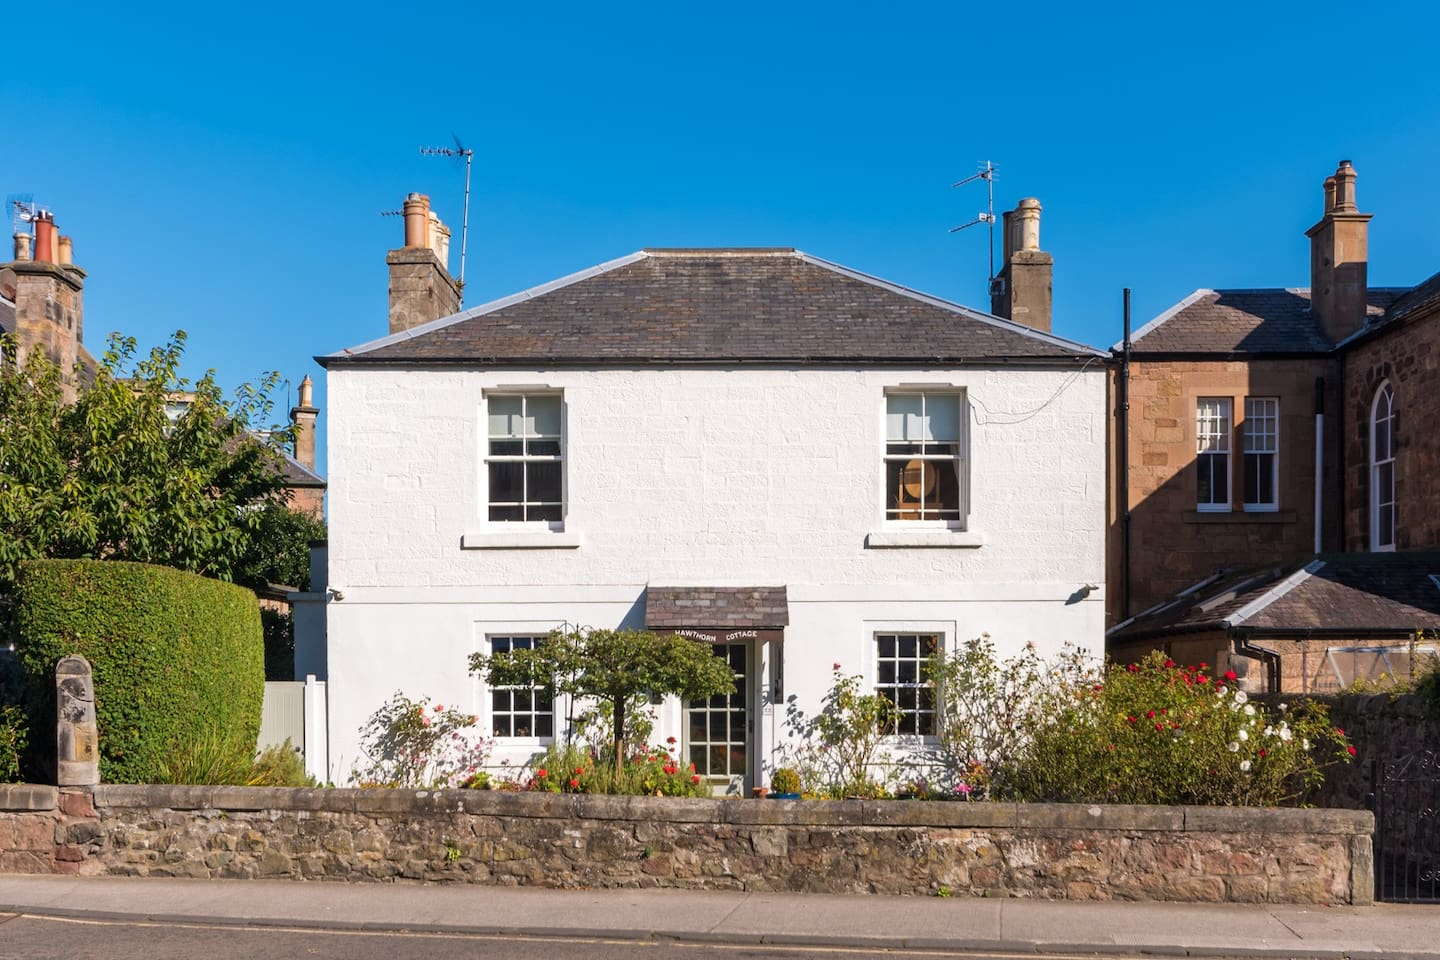 Whitehaven forms the upper part of this traditional stone house